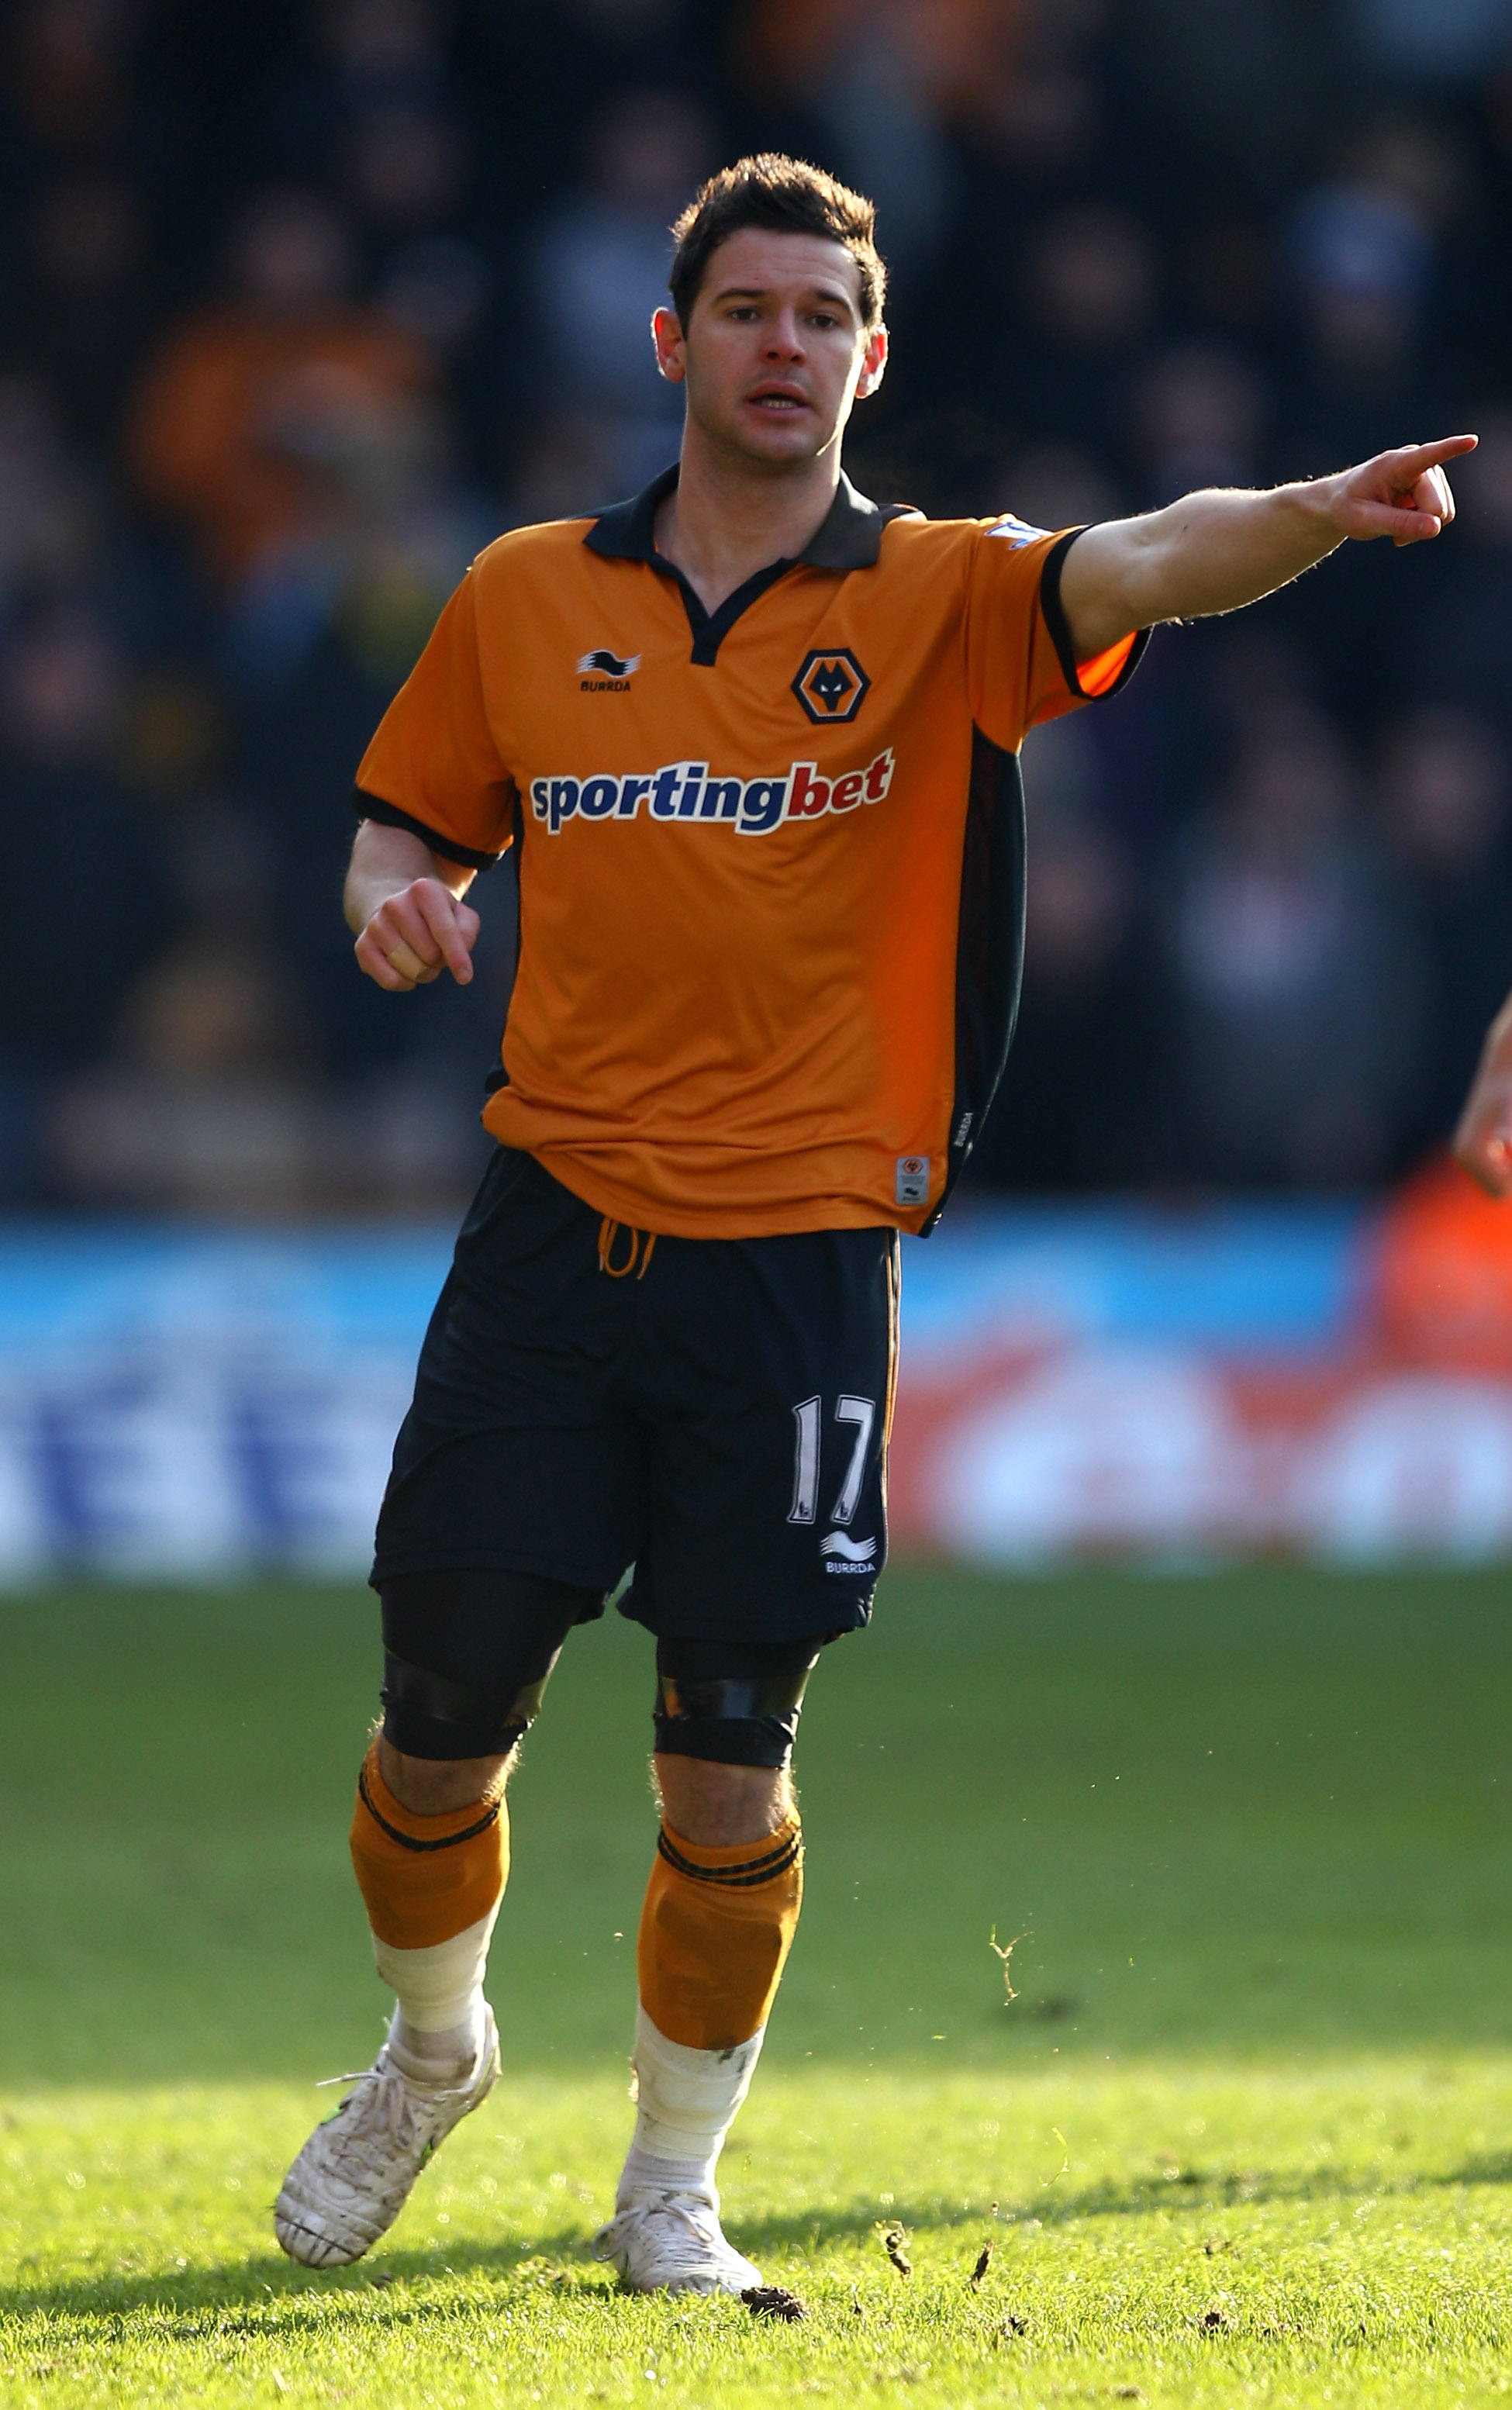 WOLVERHAMPTON, ENGLAND - JANUARY 30:  Matt Jarvis of Wolves in action during the FA Cup Sponsored by E.ON 4th Round match between Wolverhampton Wanderers and Stoke City at Molineux on January 30, 2011 in Wolverhampton, England.  (Photo by Richard Heathcot